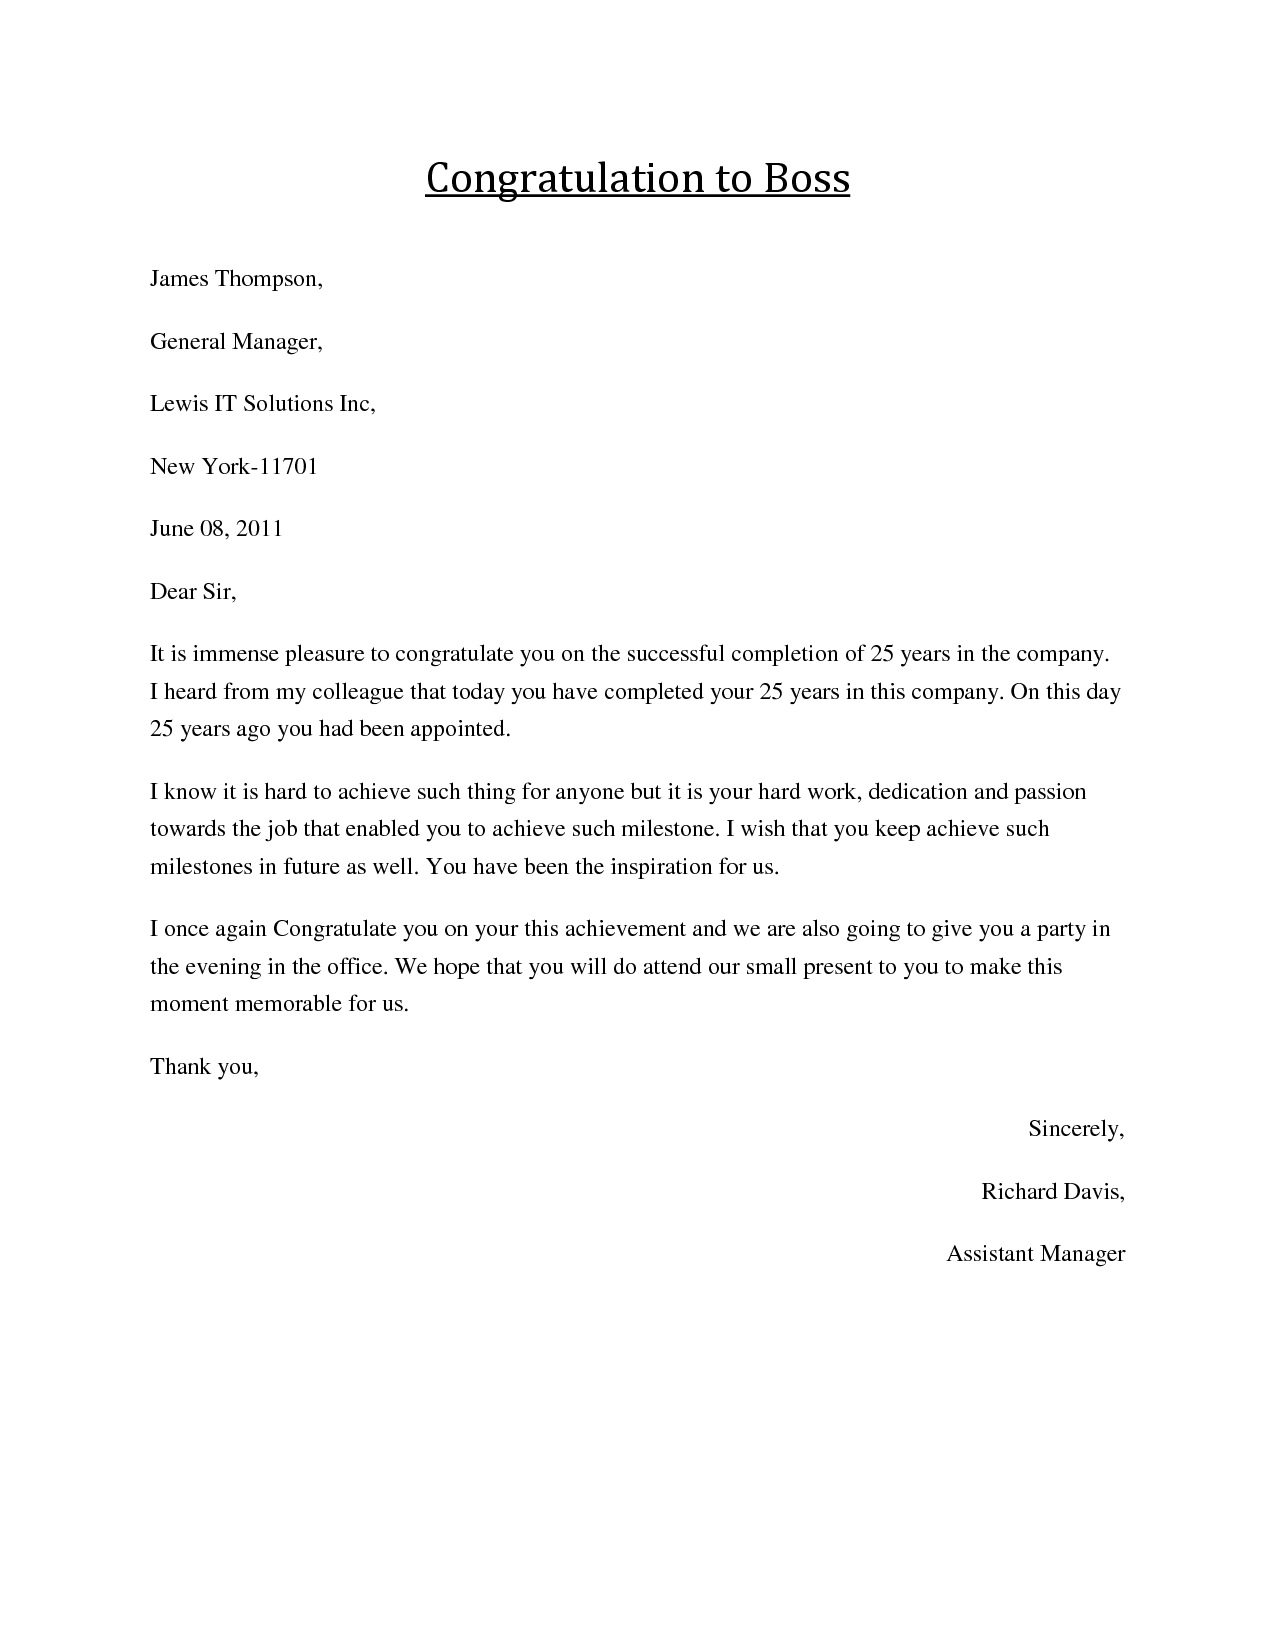 Congratulations Letter to Boss Job congratulations formal